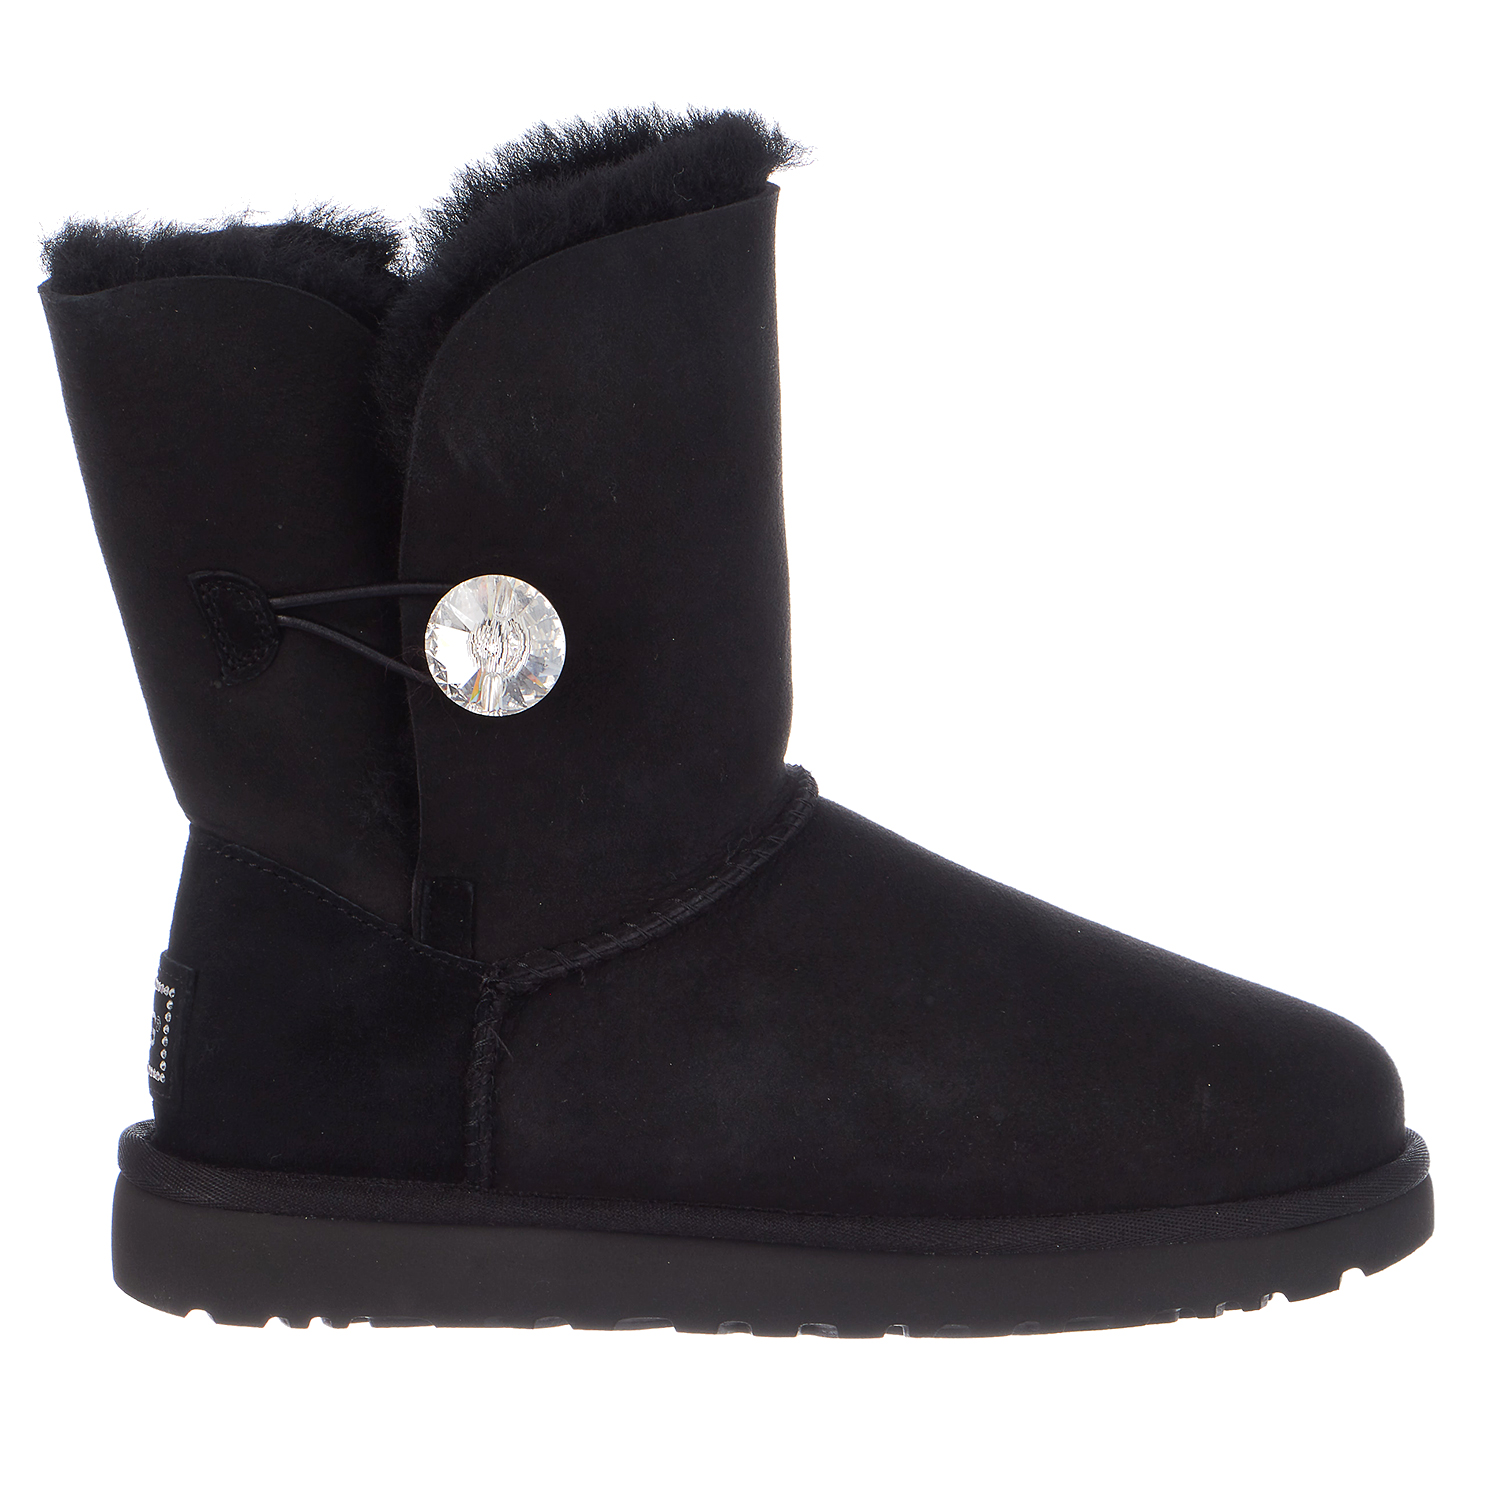 Ugg Australia Bailey Button Bling Boot  - Womens